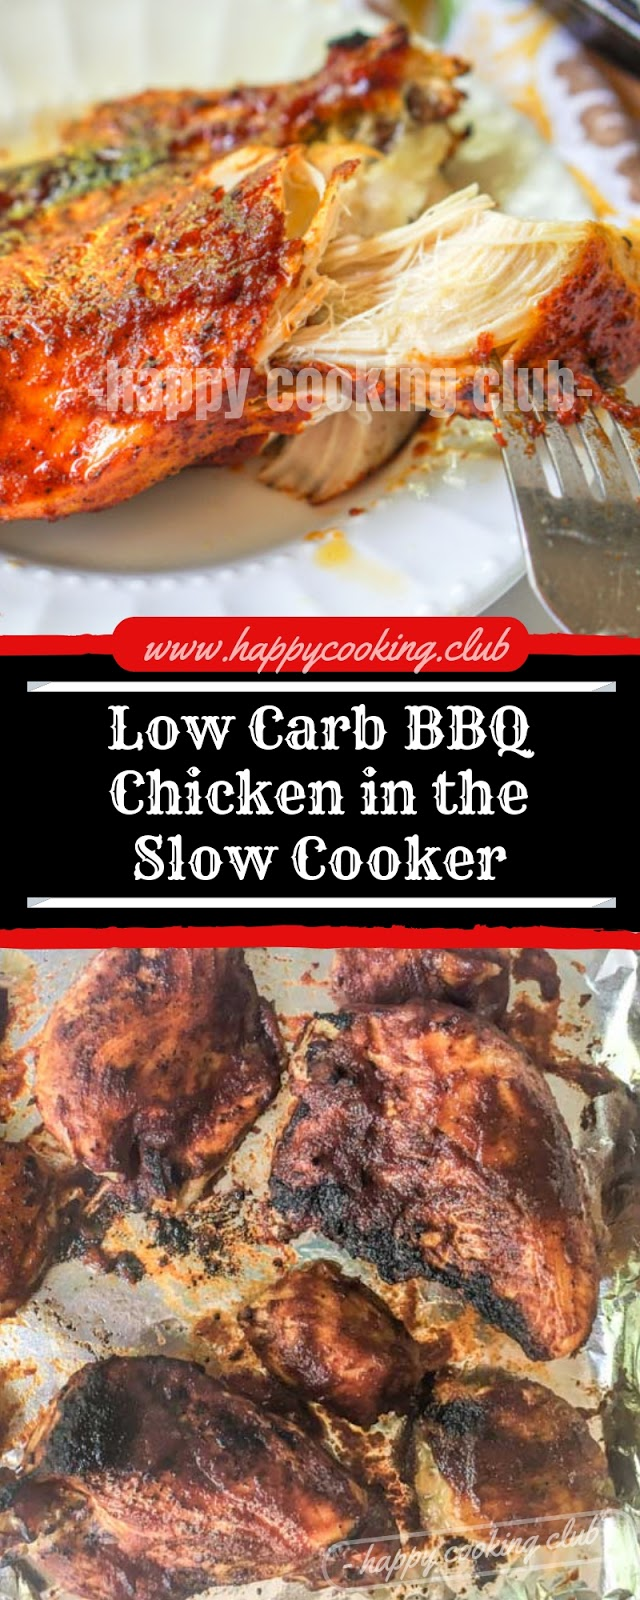 Low Carb BBQ Chicken in the Slow Cooker